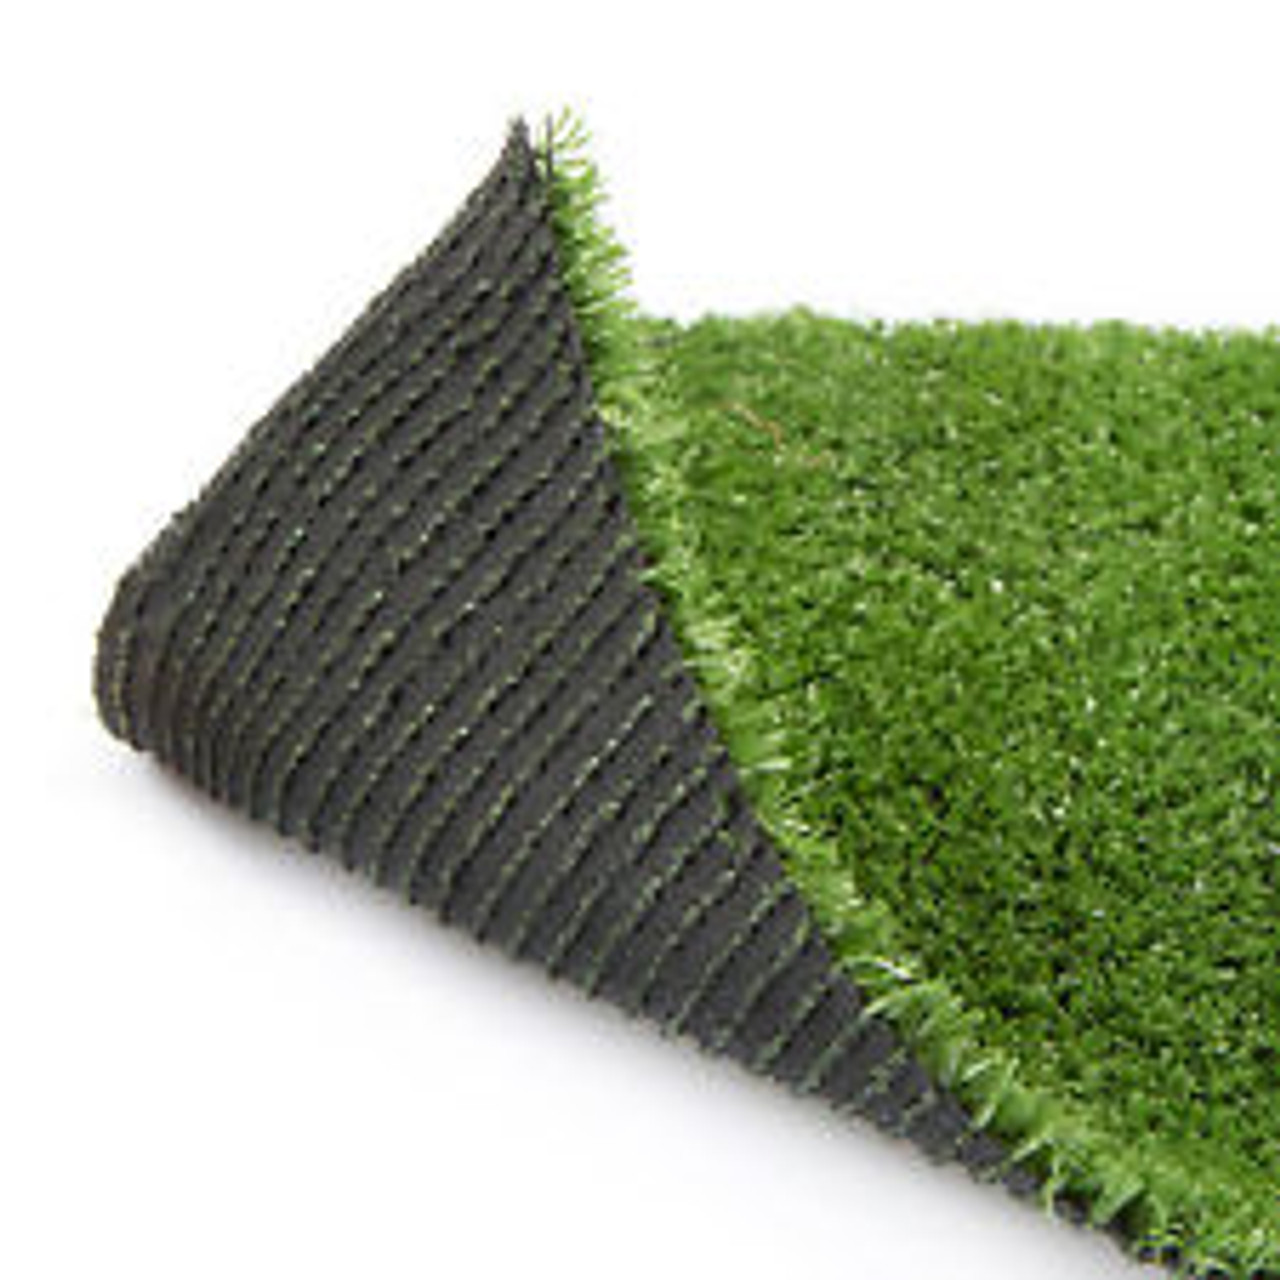 Artificial Grass Mat 6' x 10'